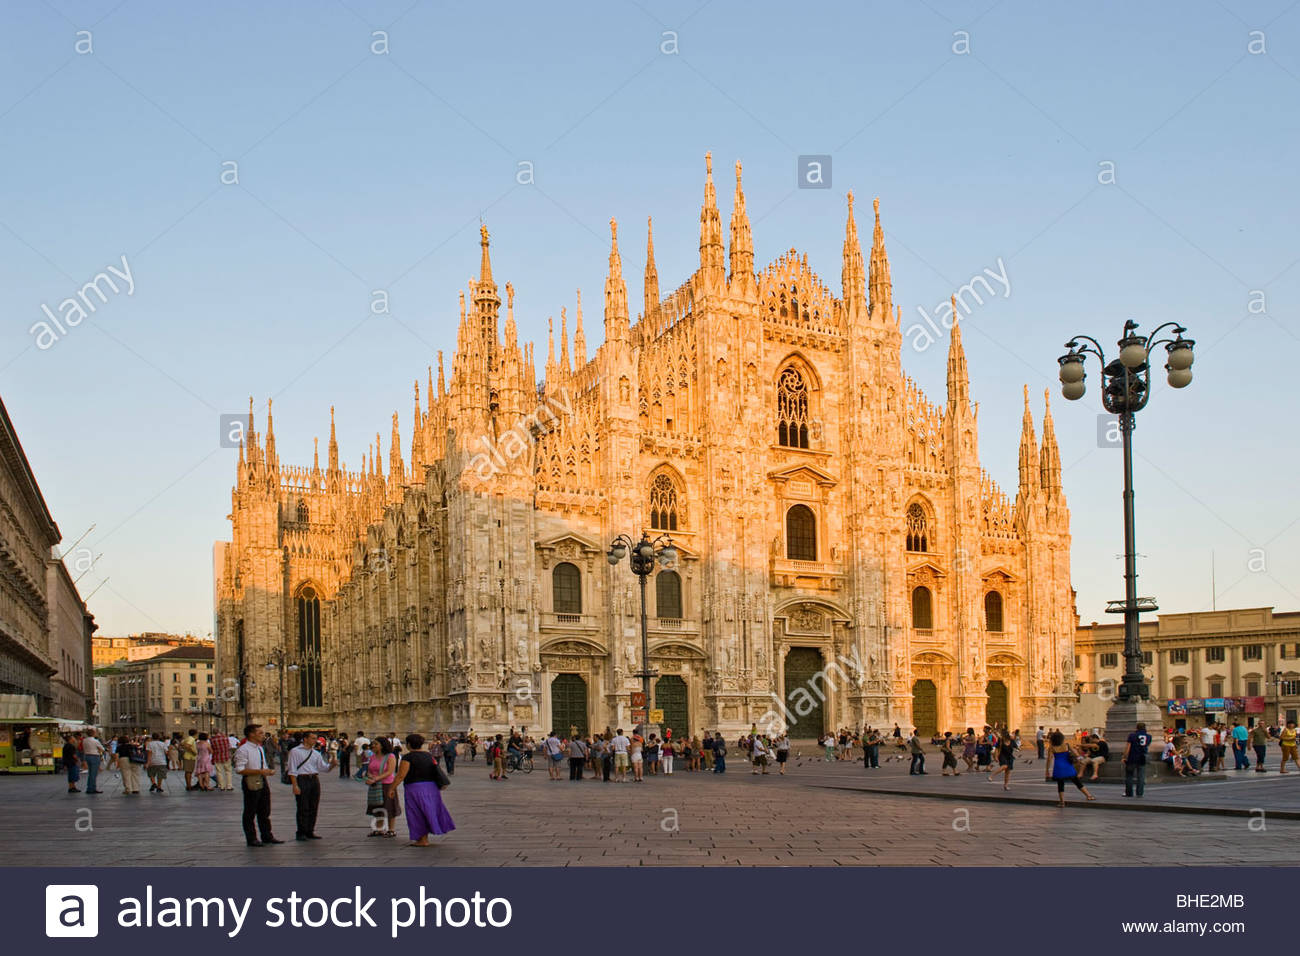 piazza del duomo, milan, lombardy, italy - Stock Image